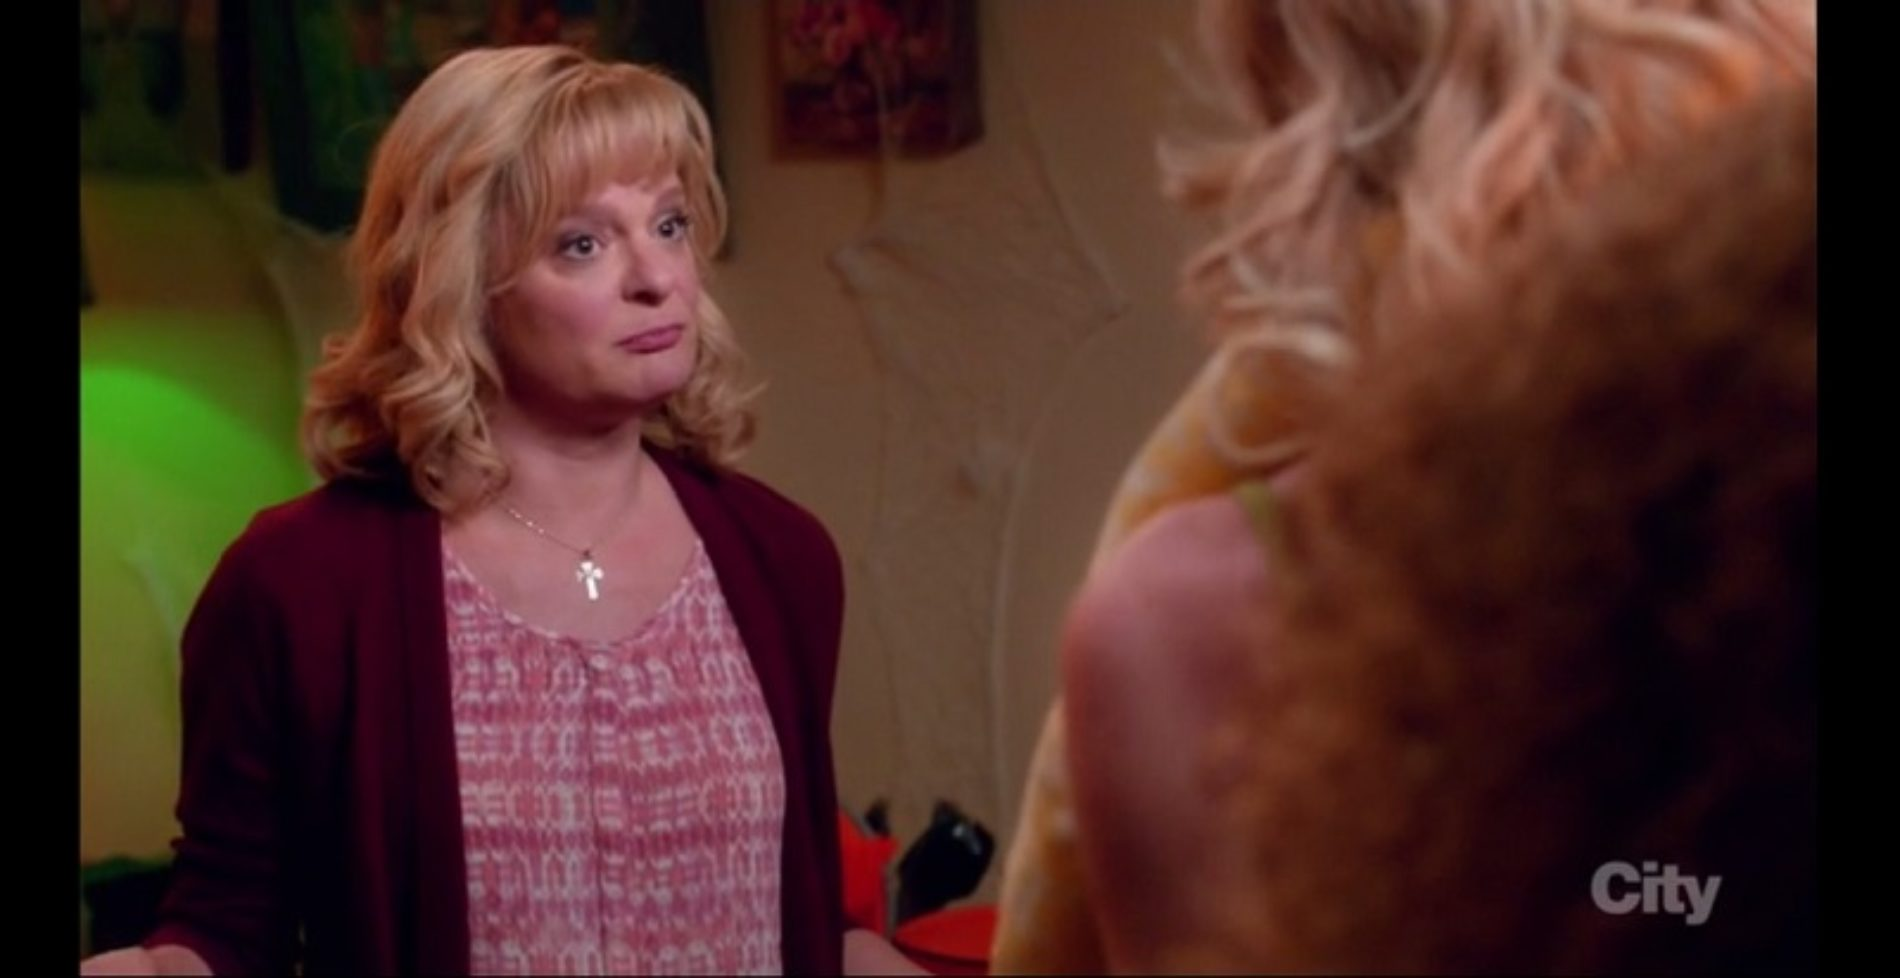 Martha Plimpton Masters the Art of Throwing Shade in 'The Real O'Neals' Clip